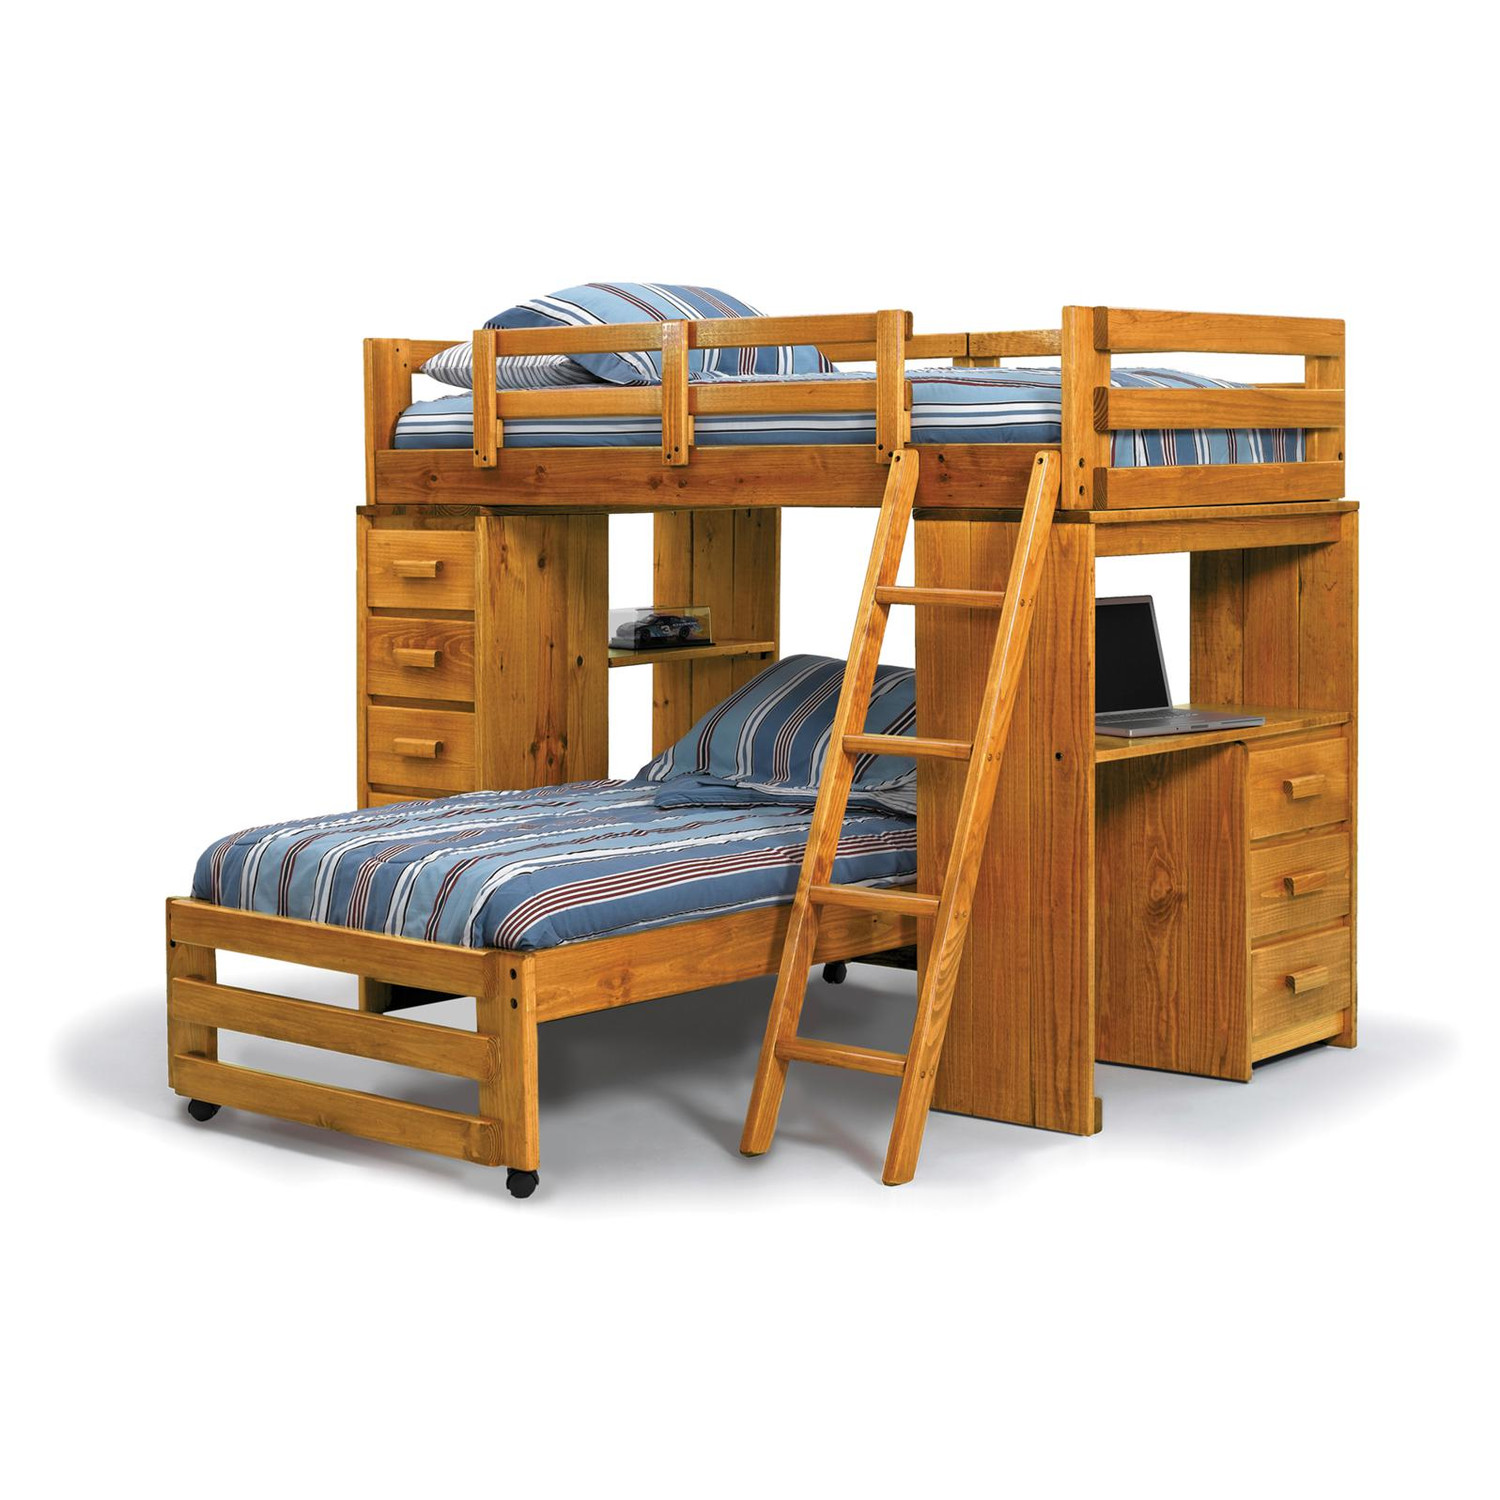 Wood bunk beds with desk - Blue Bed For Twins With Wooden Bunk Bed Design And Its Desk